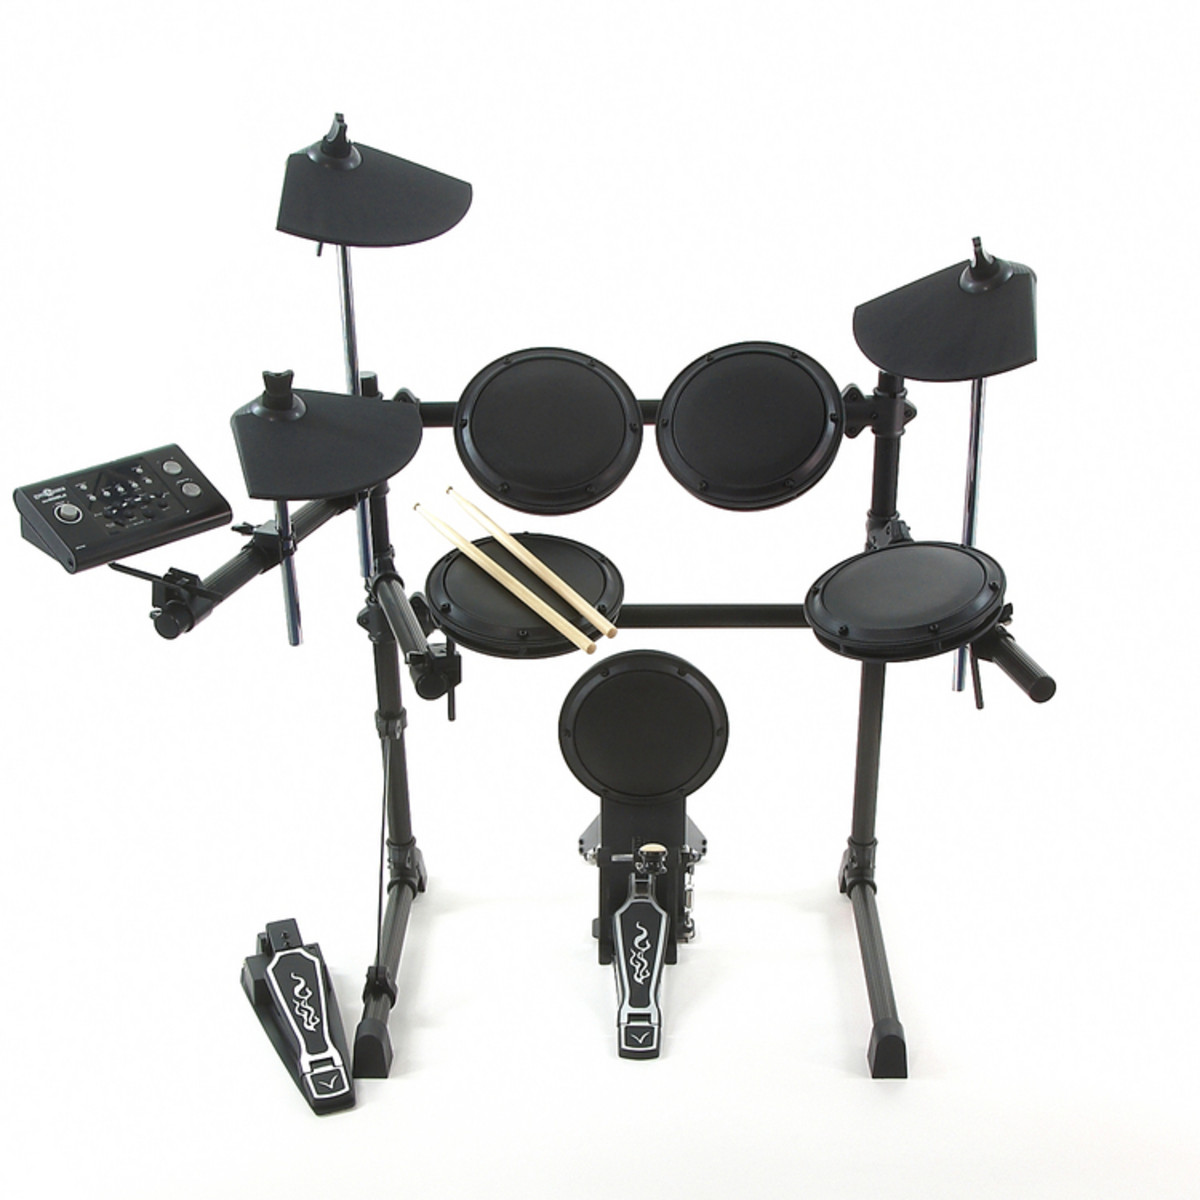 Digital Drums 502 J Electronic Drum Kit By Gear4music